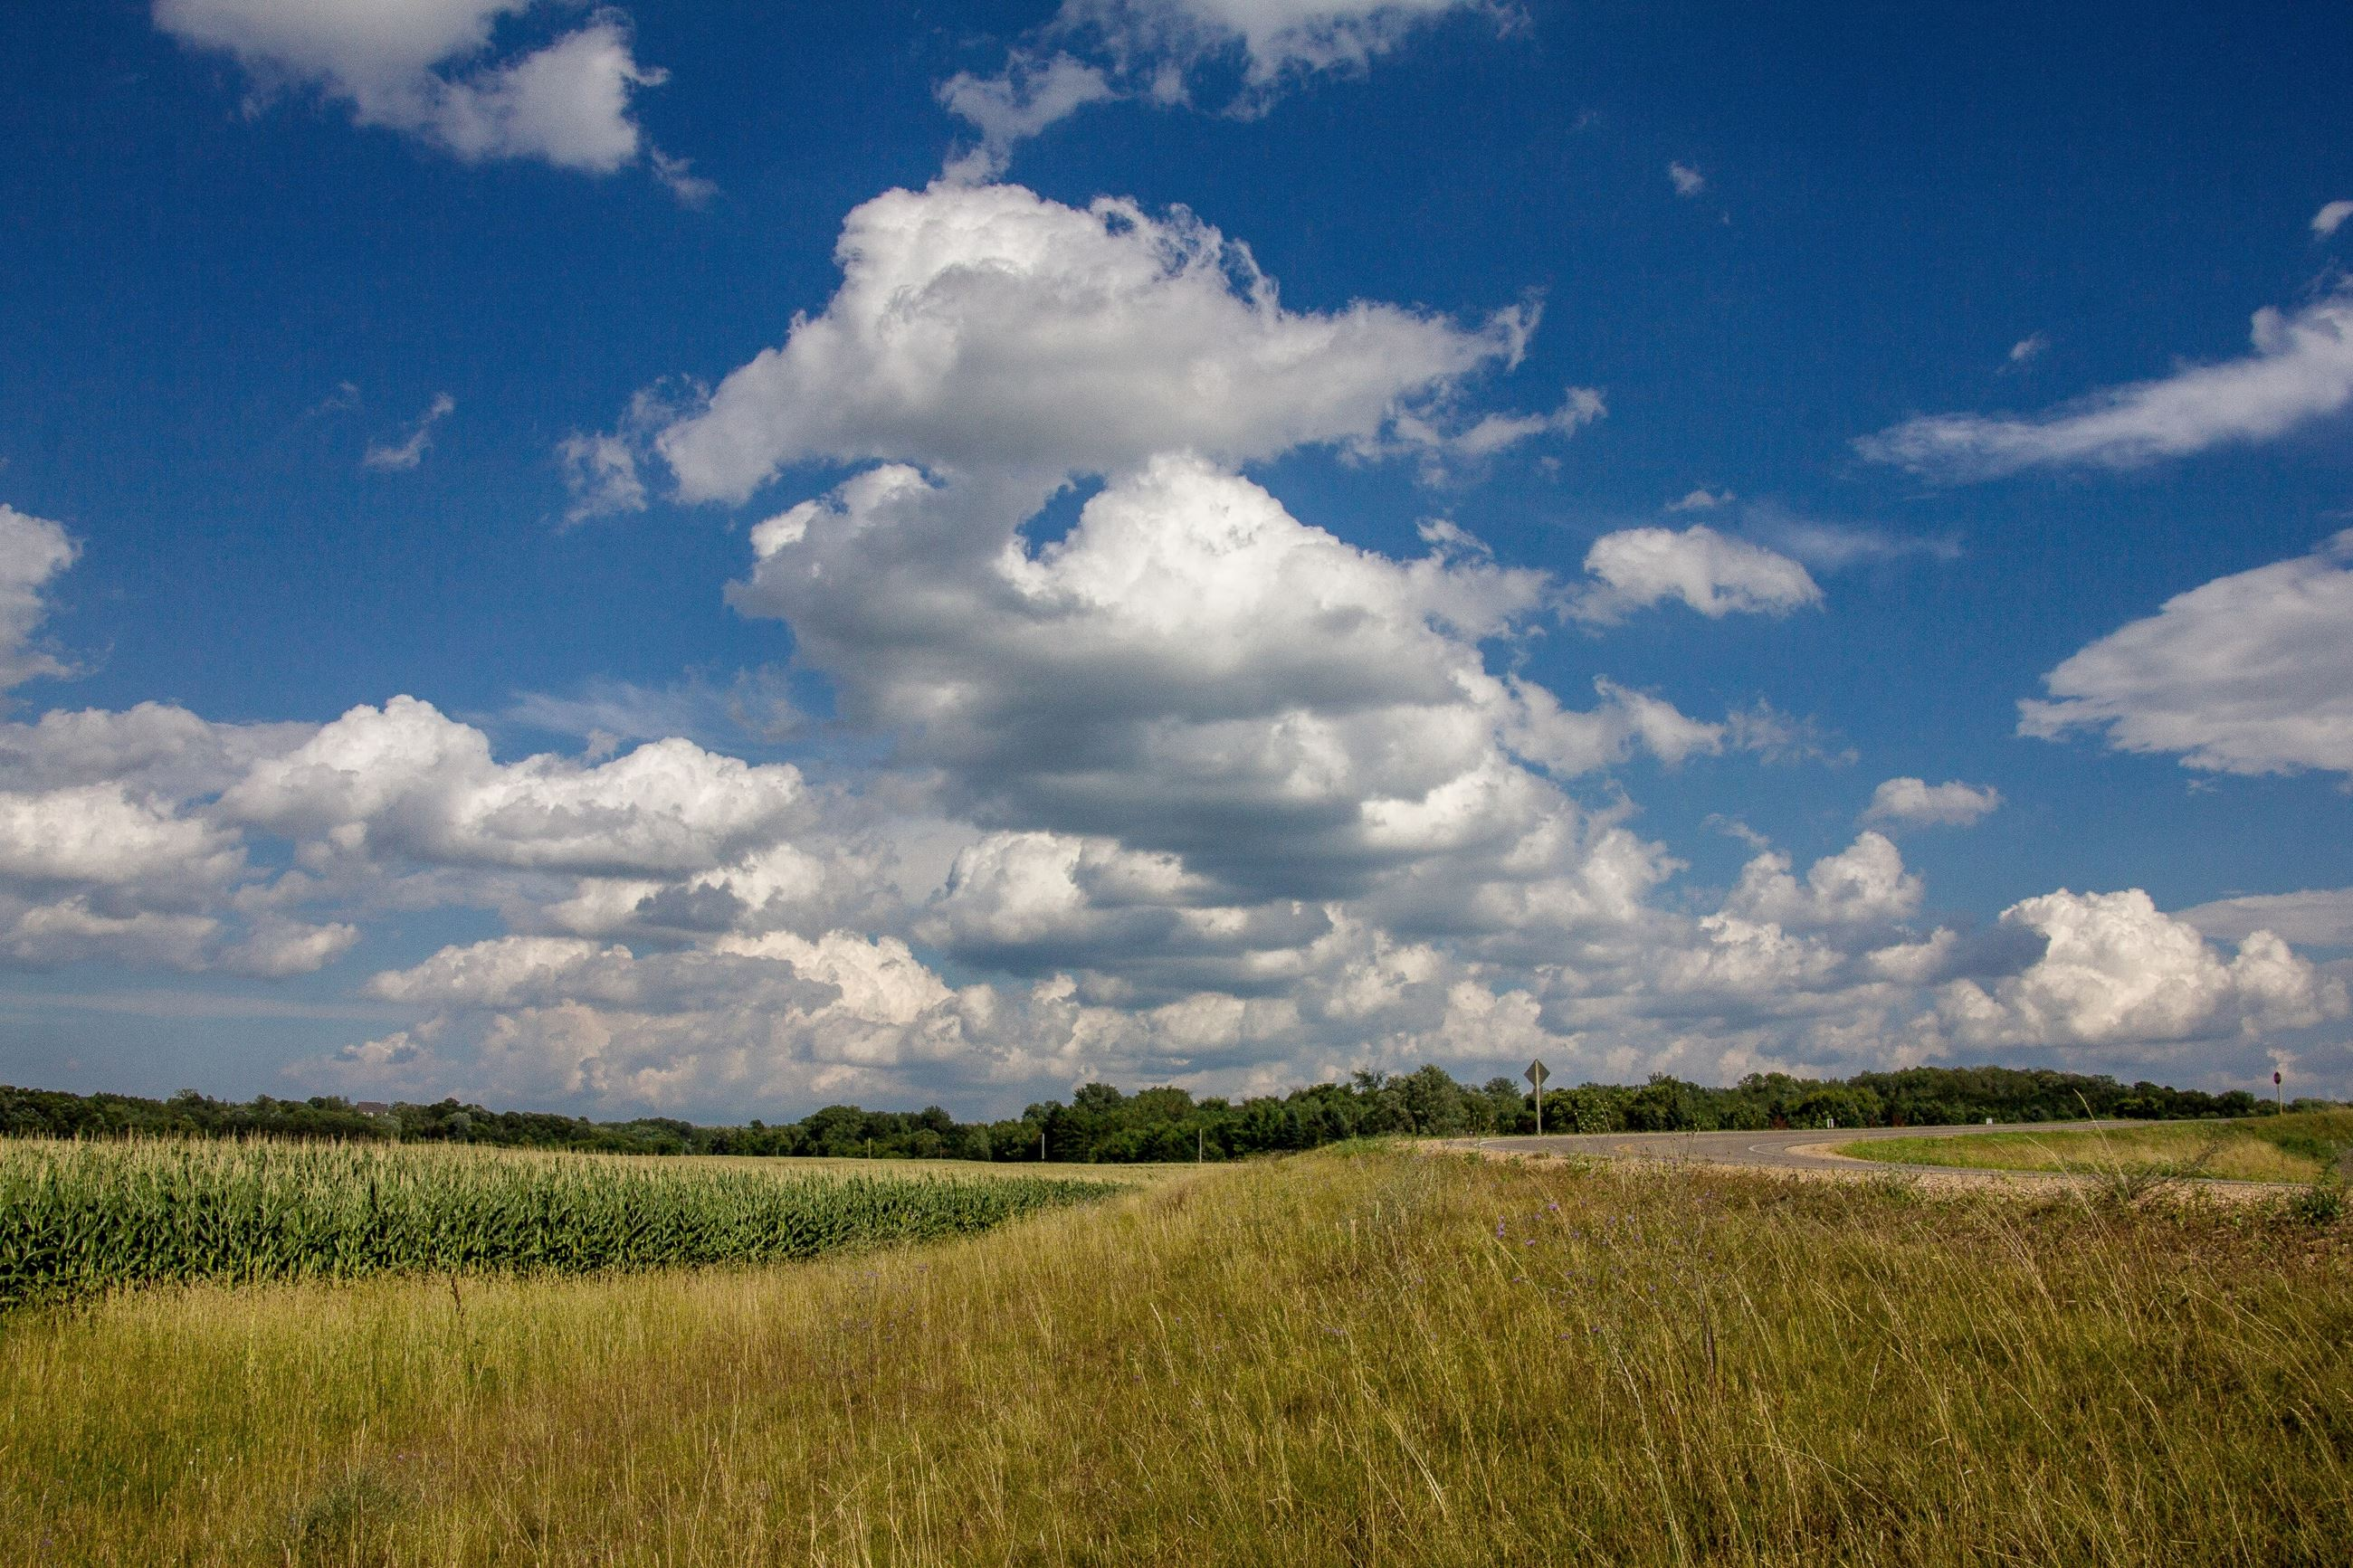 Cornfield with Blue Sky and Clouds